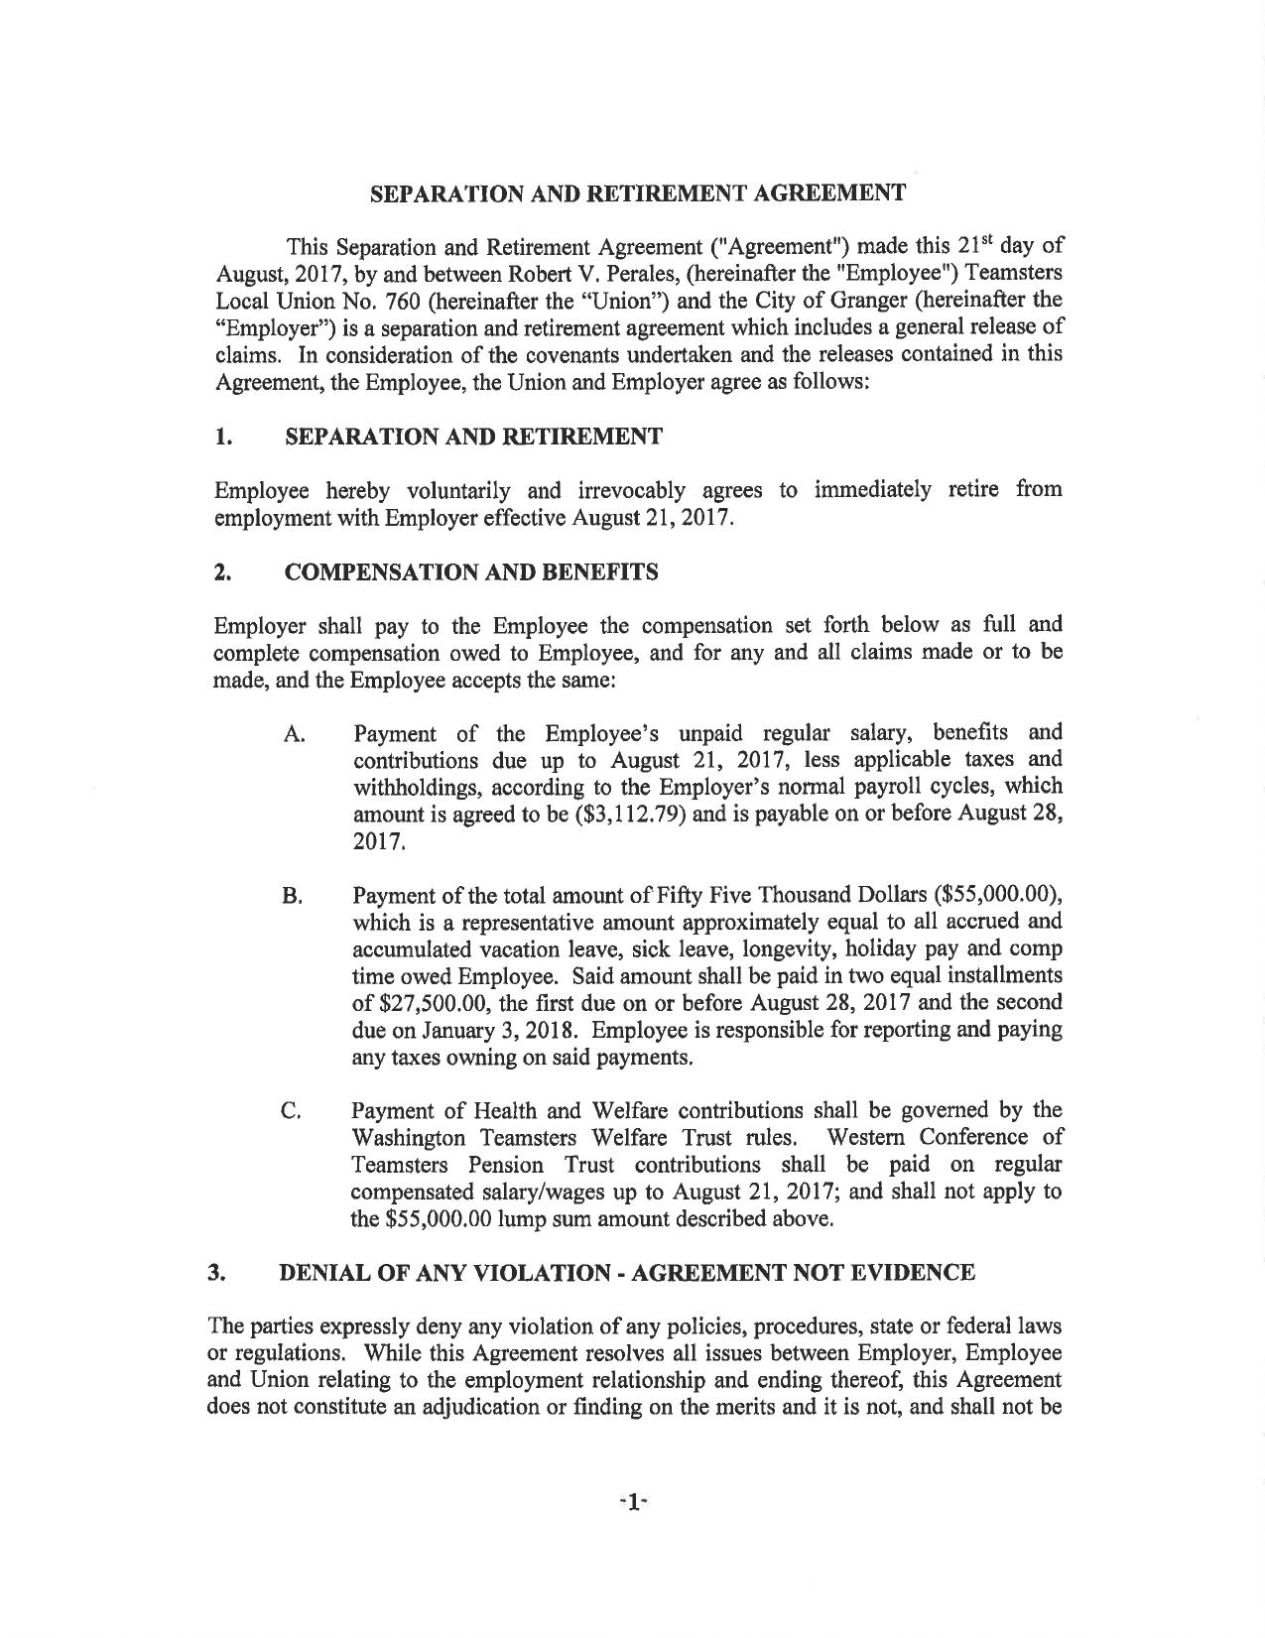 Download PDF Robert Perales Separation Agreement